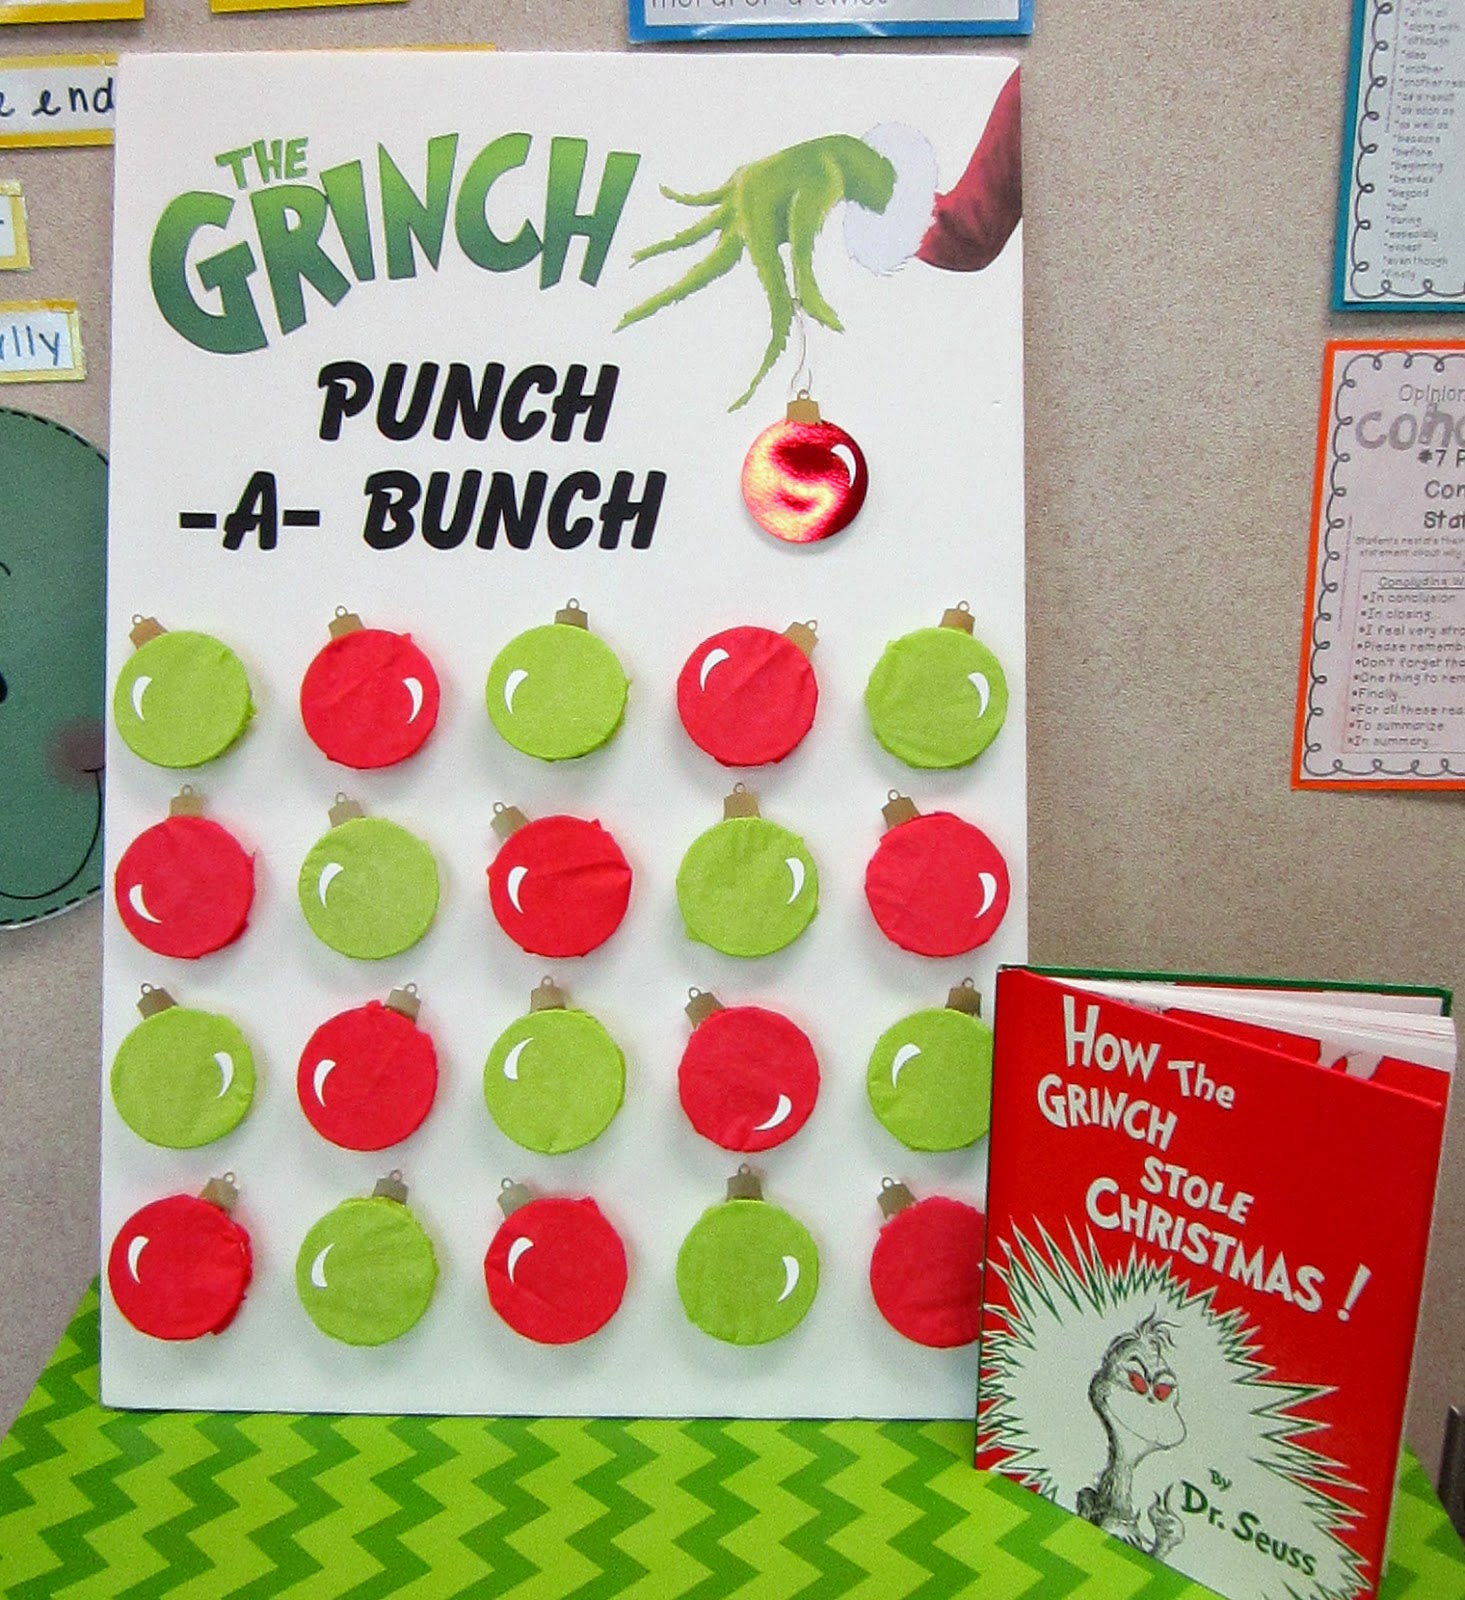 Christmas Party Games. Office Christmas Party Games